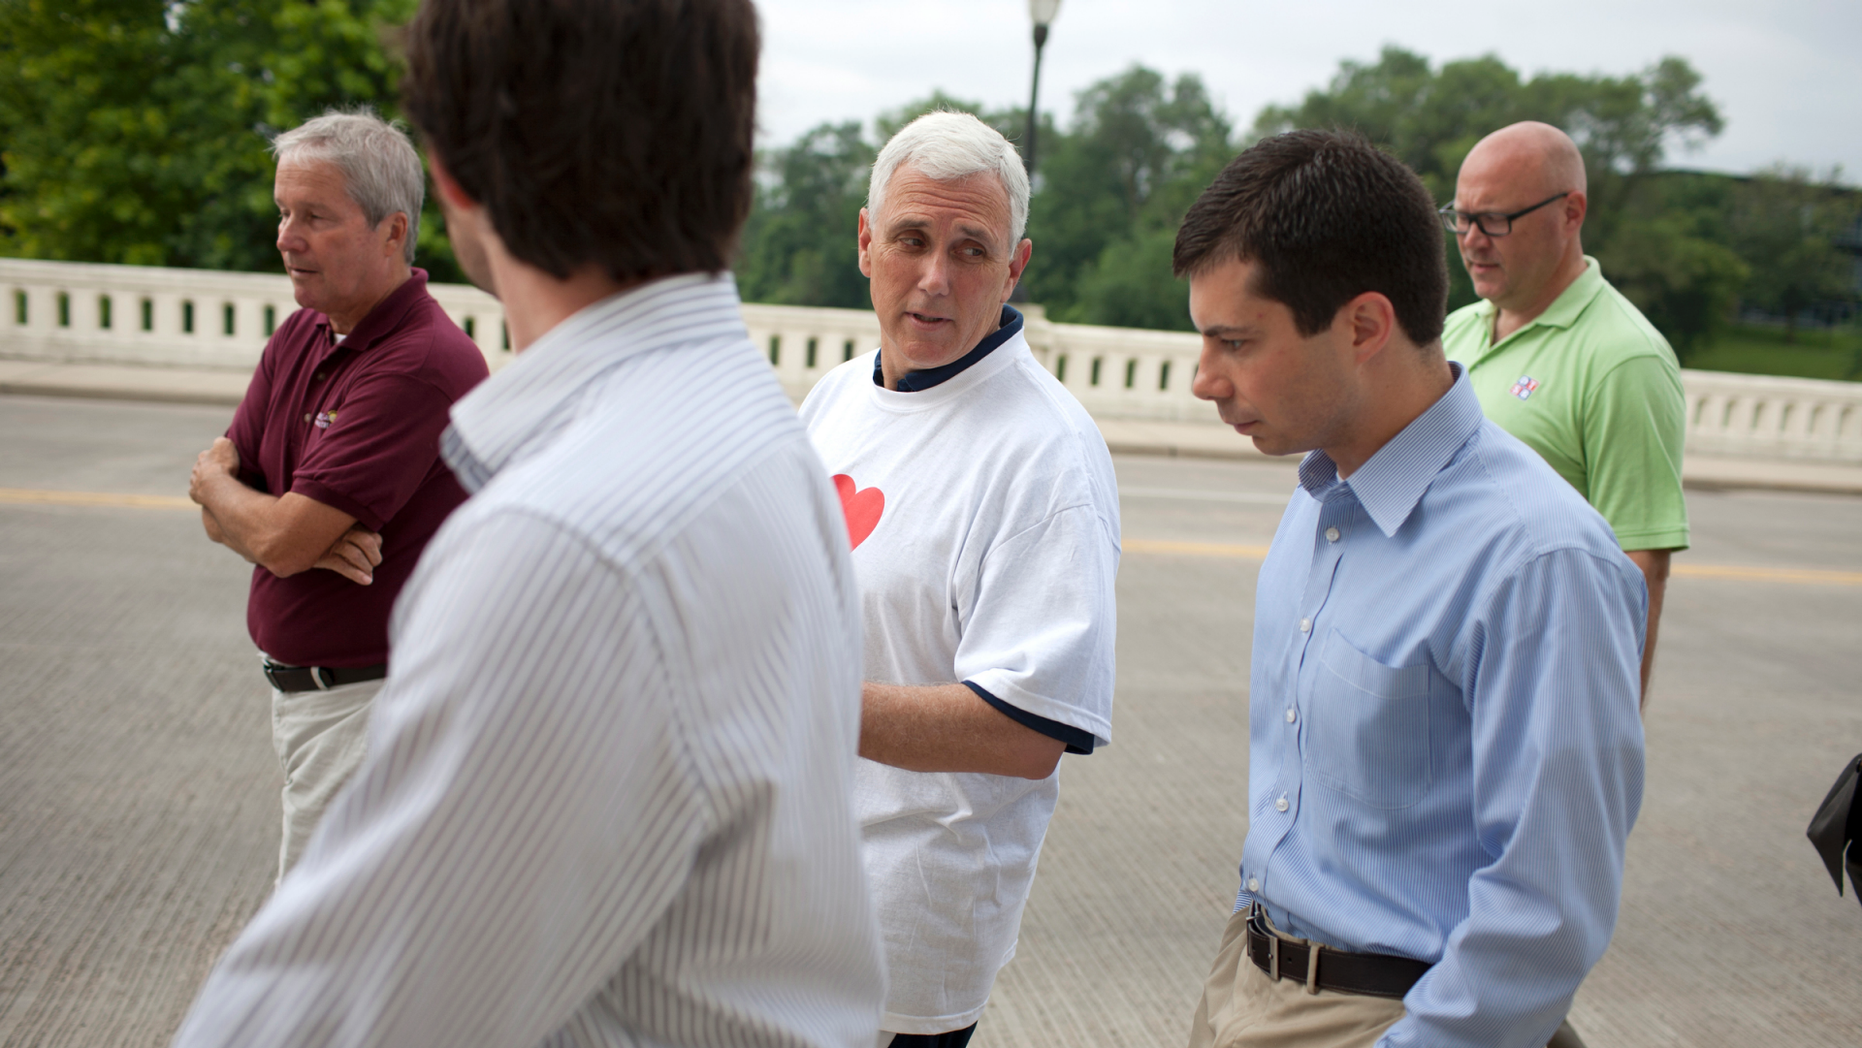 FILE - IN this July 3, 2013, file photo, then-Indiana Gov. Mike Pence, center, talks with South Bend mayor Pete Buttigieg, right, as they cross the Jefferson Boulevard bridge during a fitness walk along the St. Joseph River in downtown South Bend, Ind. Democratic presidential candidate Pete Buttigieg blasts Vice President Mike Pence's religious conservatism. But as the mayor of South Bend, Indiana, his tone toward the state's former governor was more muted. The two once had a cordial relationship. (AP Photo/South Bend Tribune, James Brosher)/South Bend Tribune via AP)